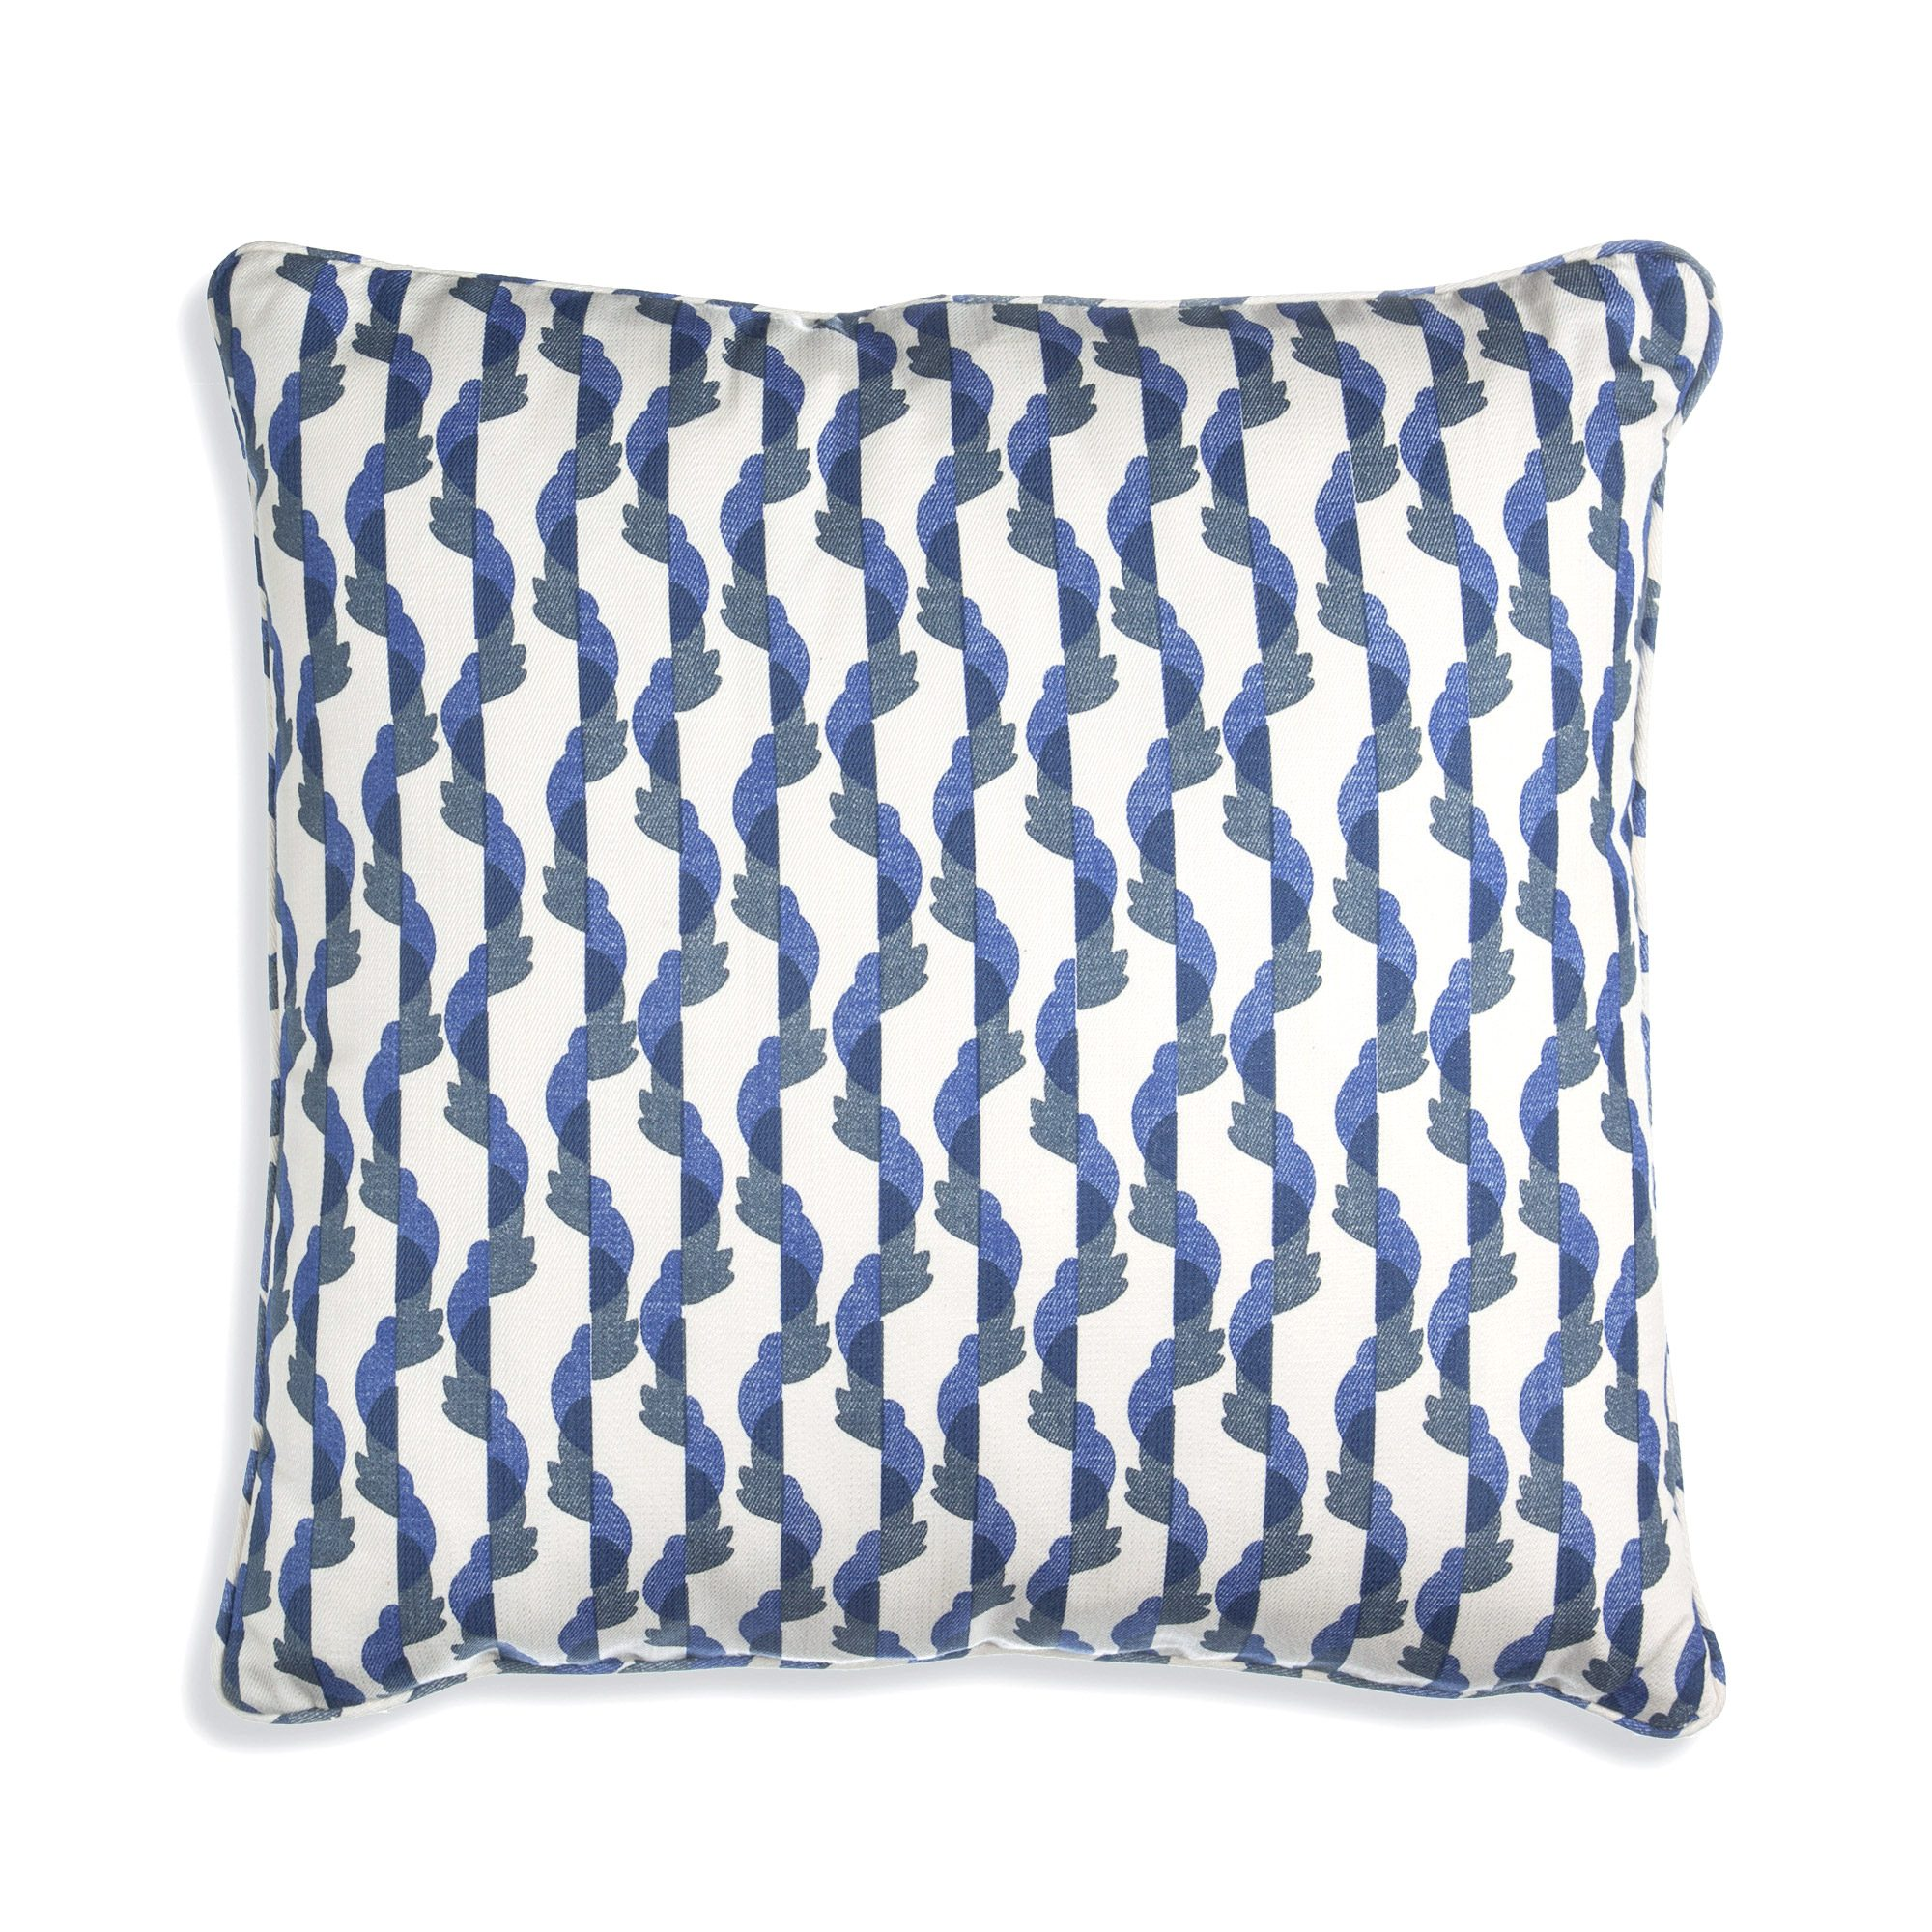 Small Square Cushion in Blue Botany